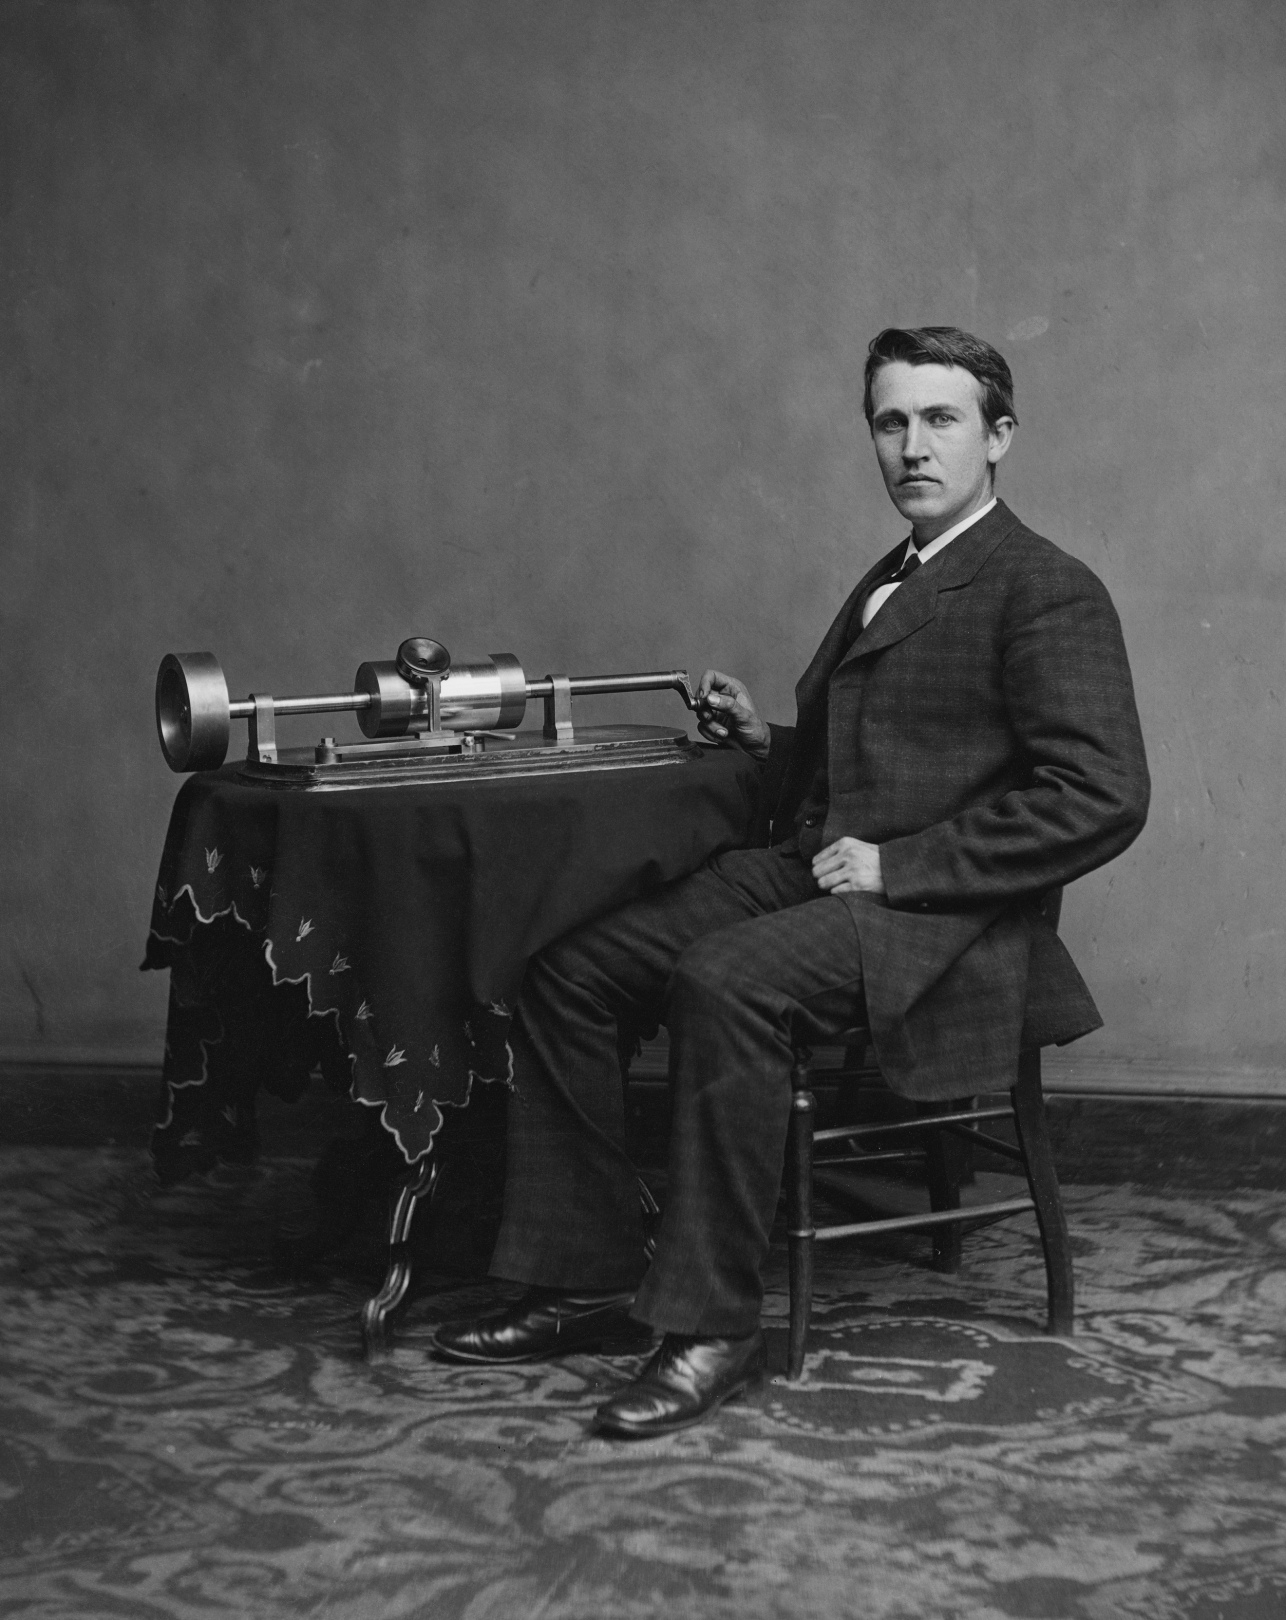 Edison with his phonograph at Washington, April 1978. Photograph by Matthew Brady.